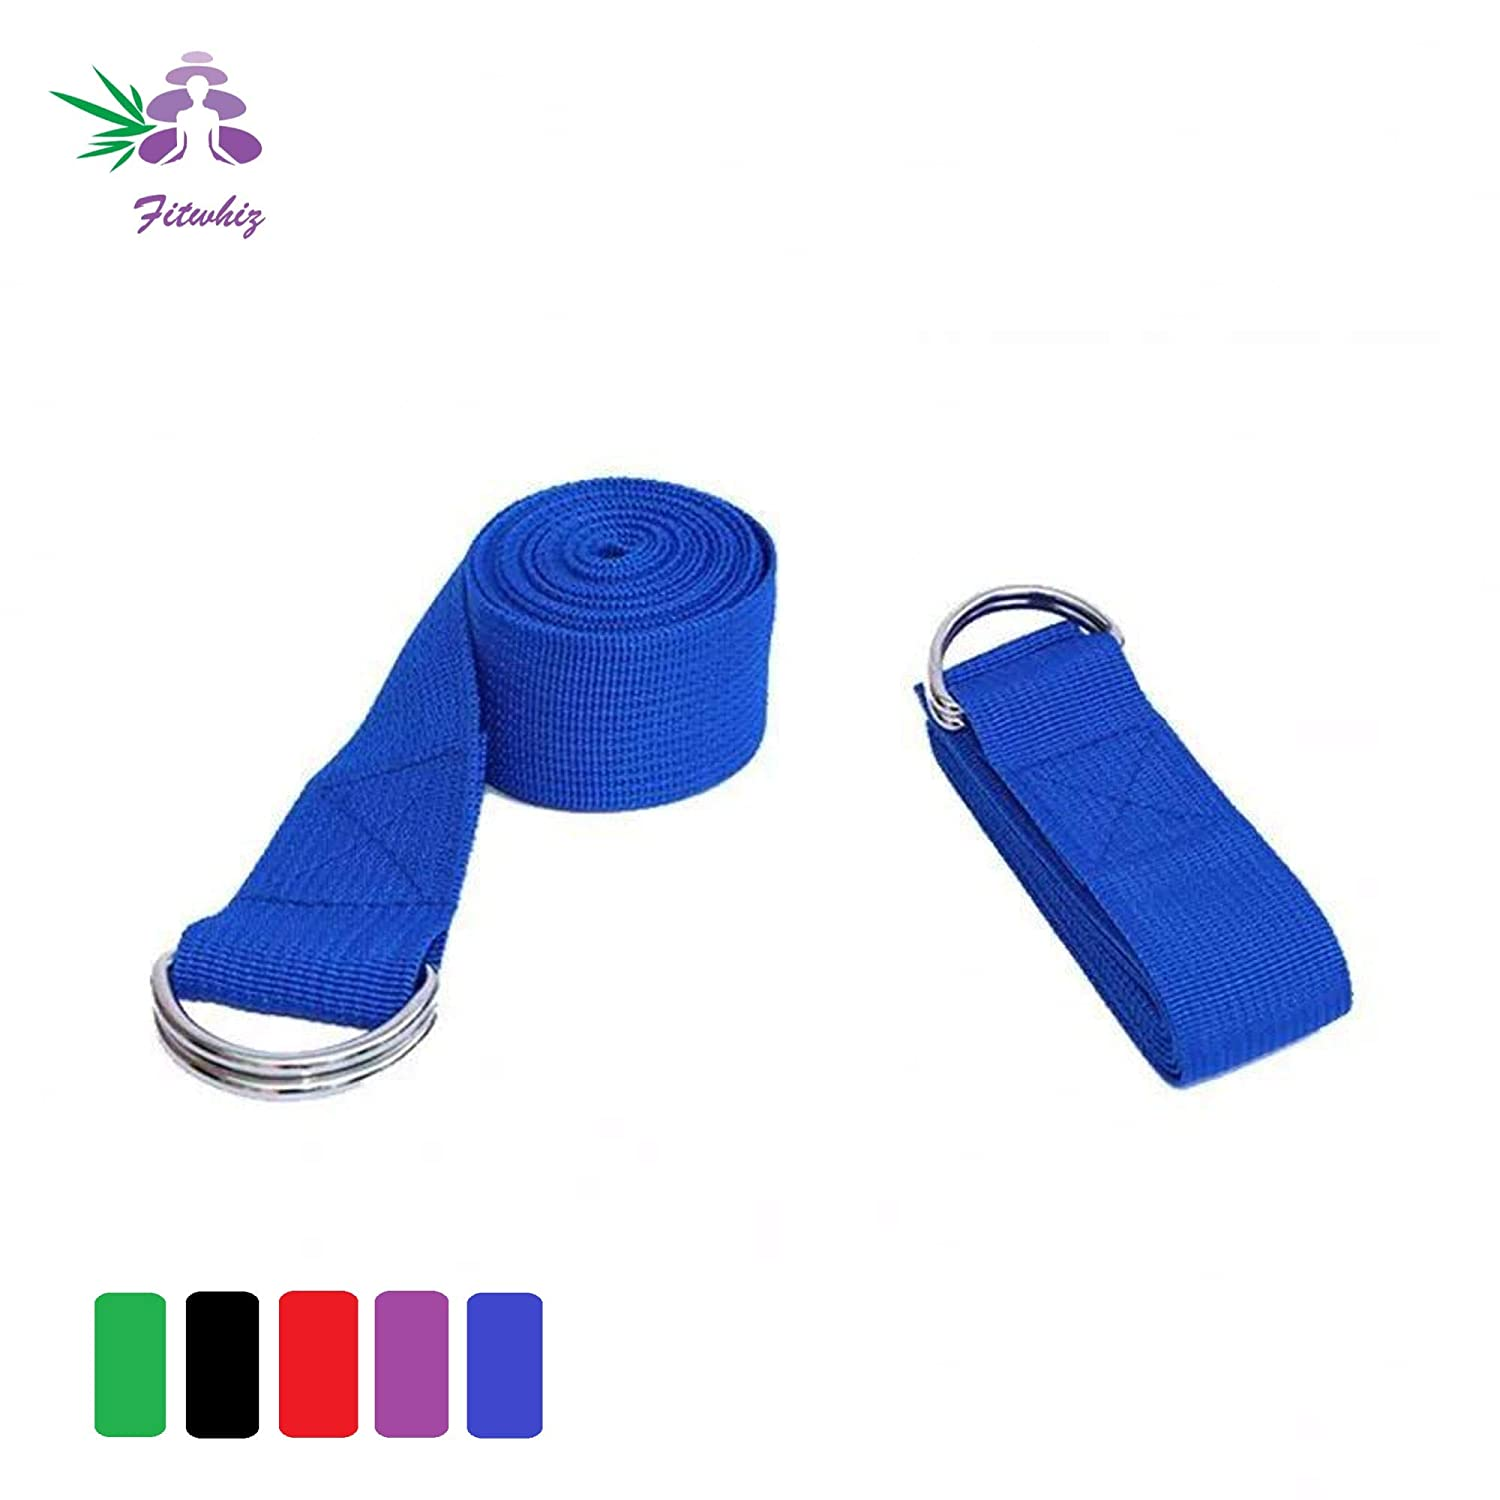 Fitwhiz Yoga Exercise Adjustable Straps Flexibility /& Therapy 6ft // 12ft - Durable Exercise Straps w//Adjustable D-Ring Buckle for Pilates /& Gym Workouts Stretching Balancing